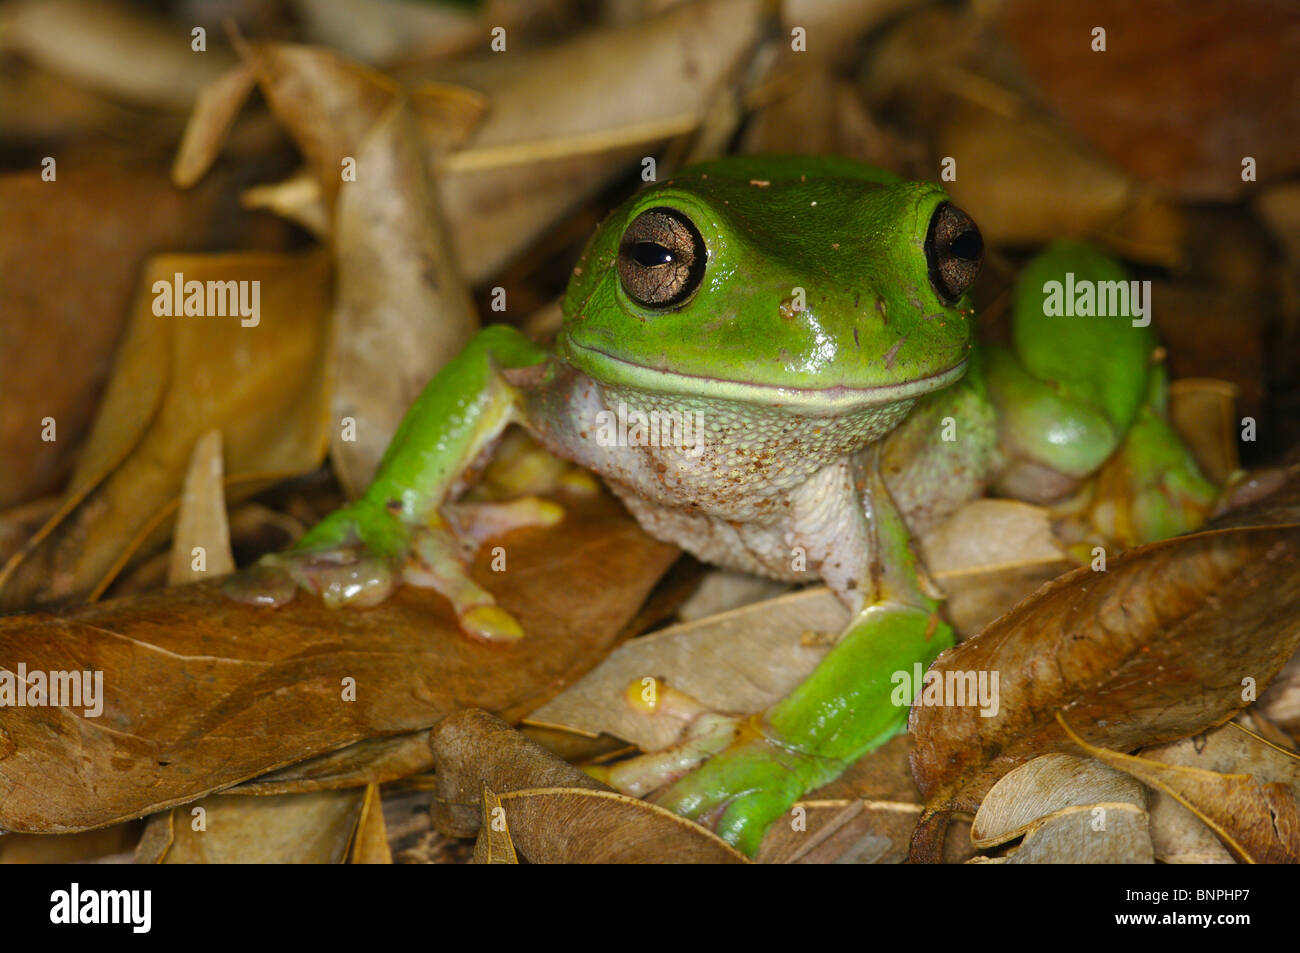 A Green Treefrog (Litoria caerulea) grinning in leaf litter in Batchelor, Northern Territory, Australia. - Stock Image